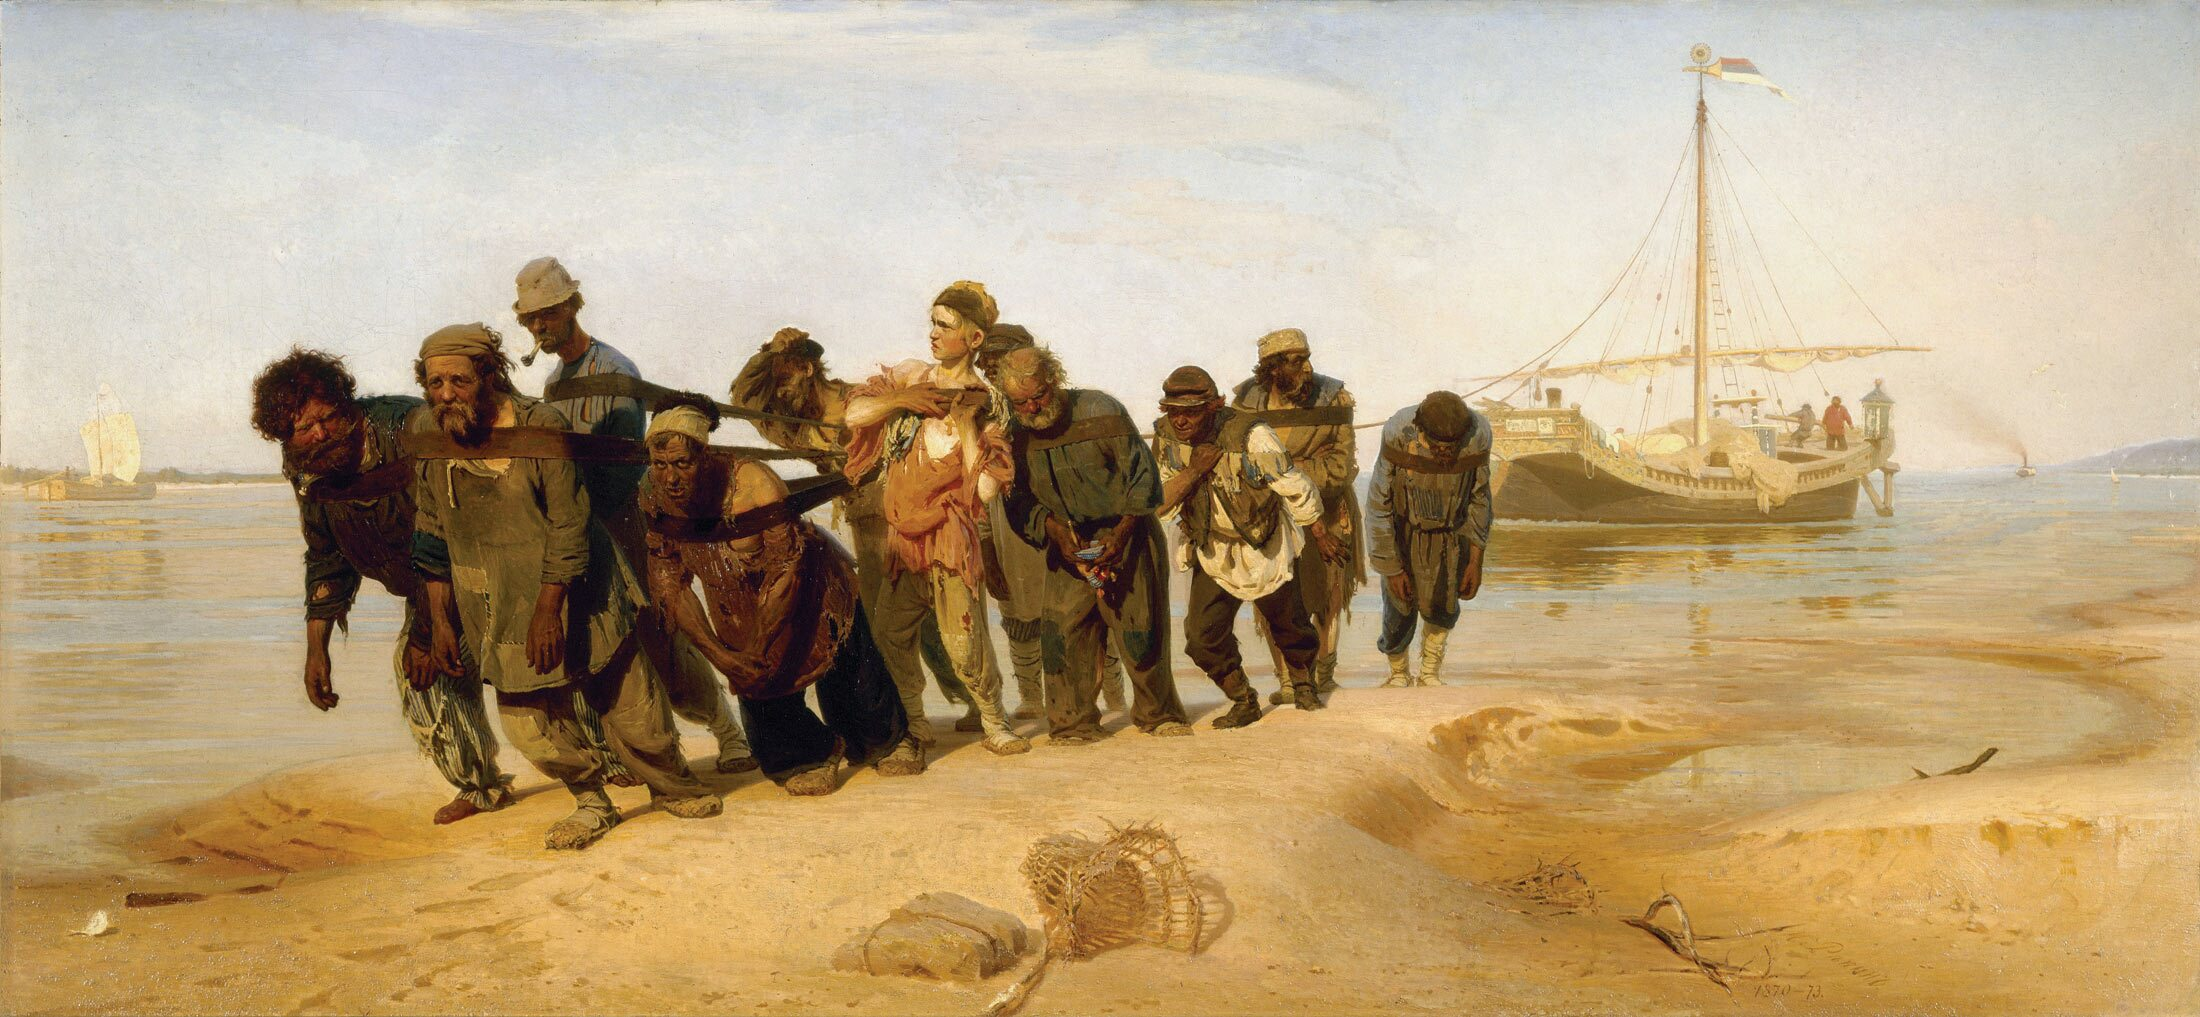 Ilya Repin's painting 'Barge Haulers on the Volga' (1870-73) became for the Russian populists an iconic depiction of the people's suffering.